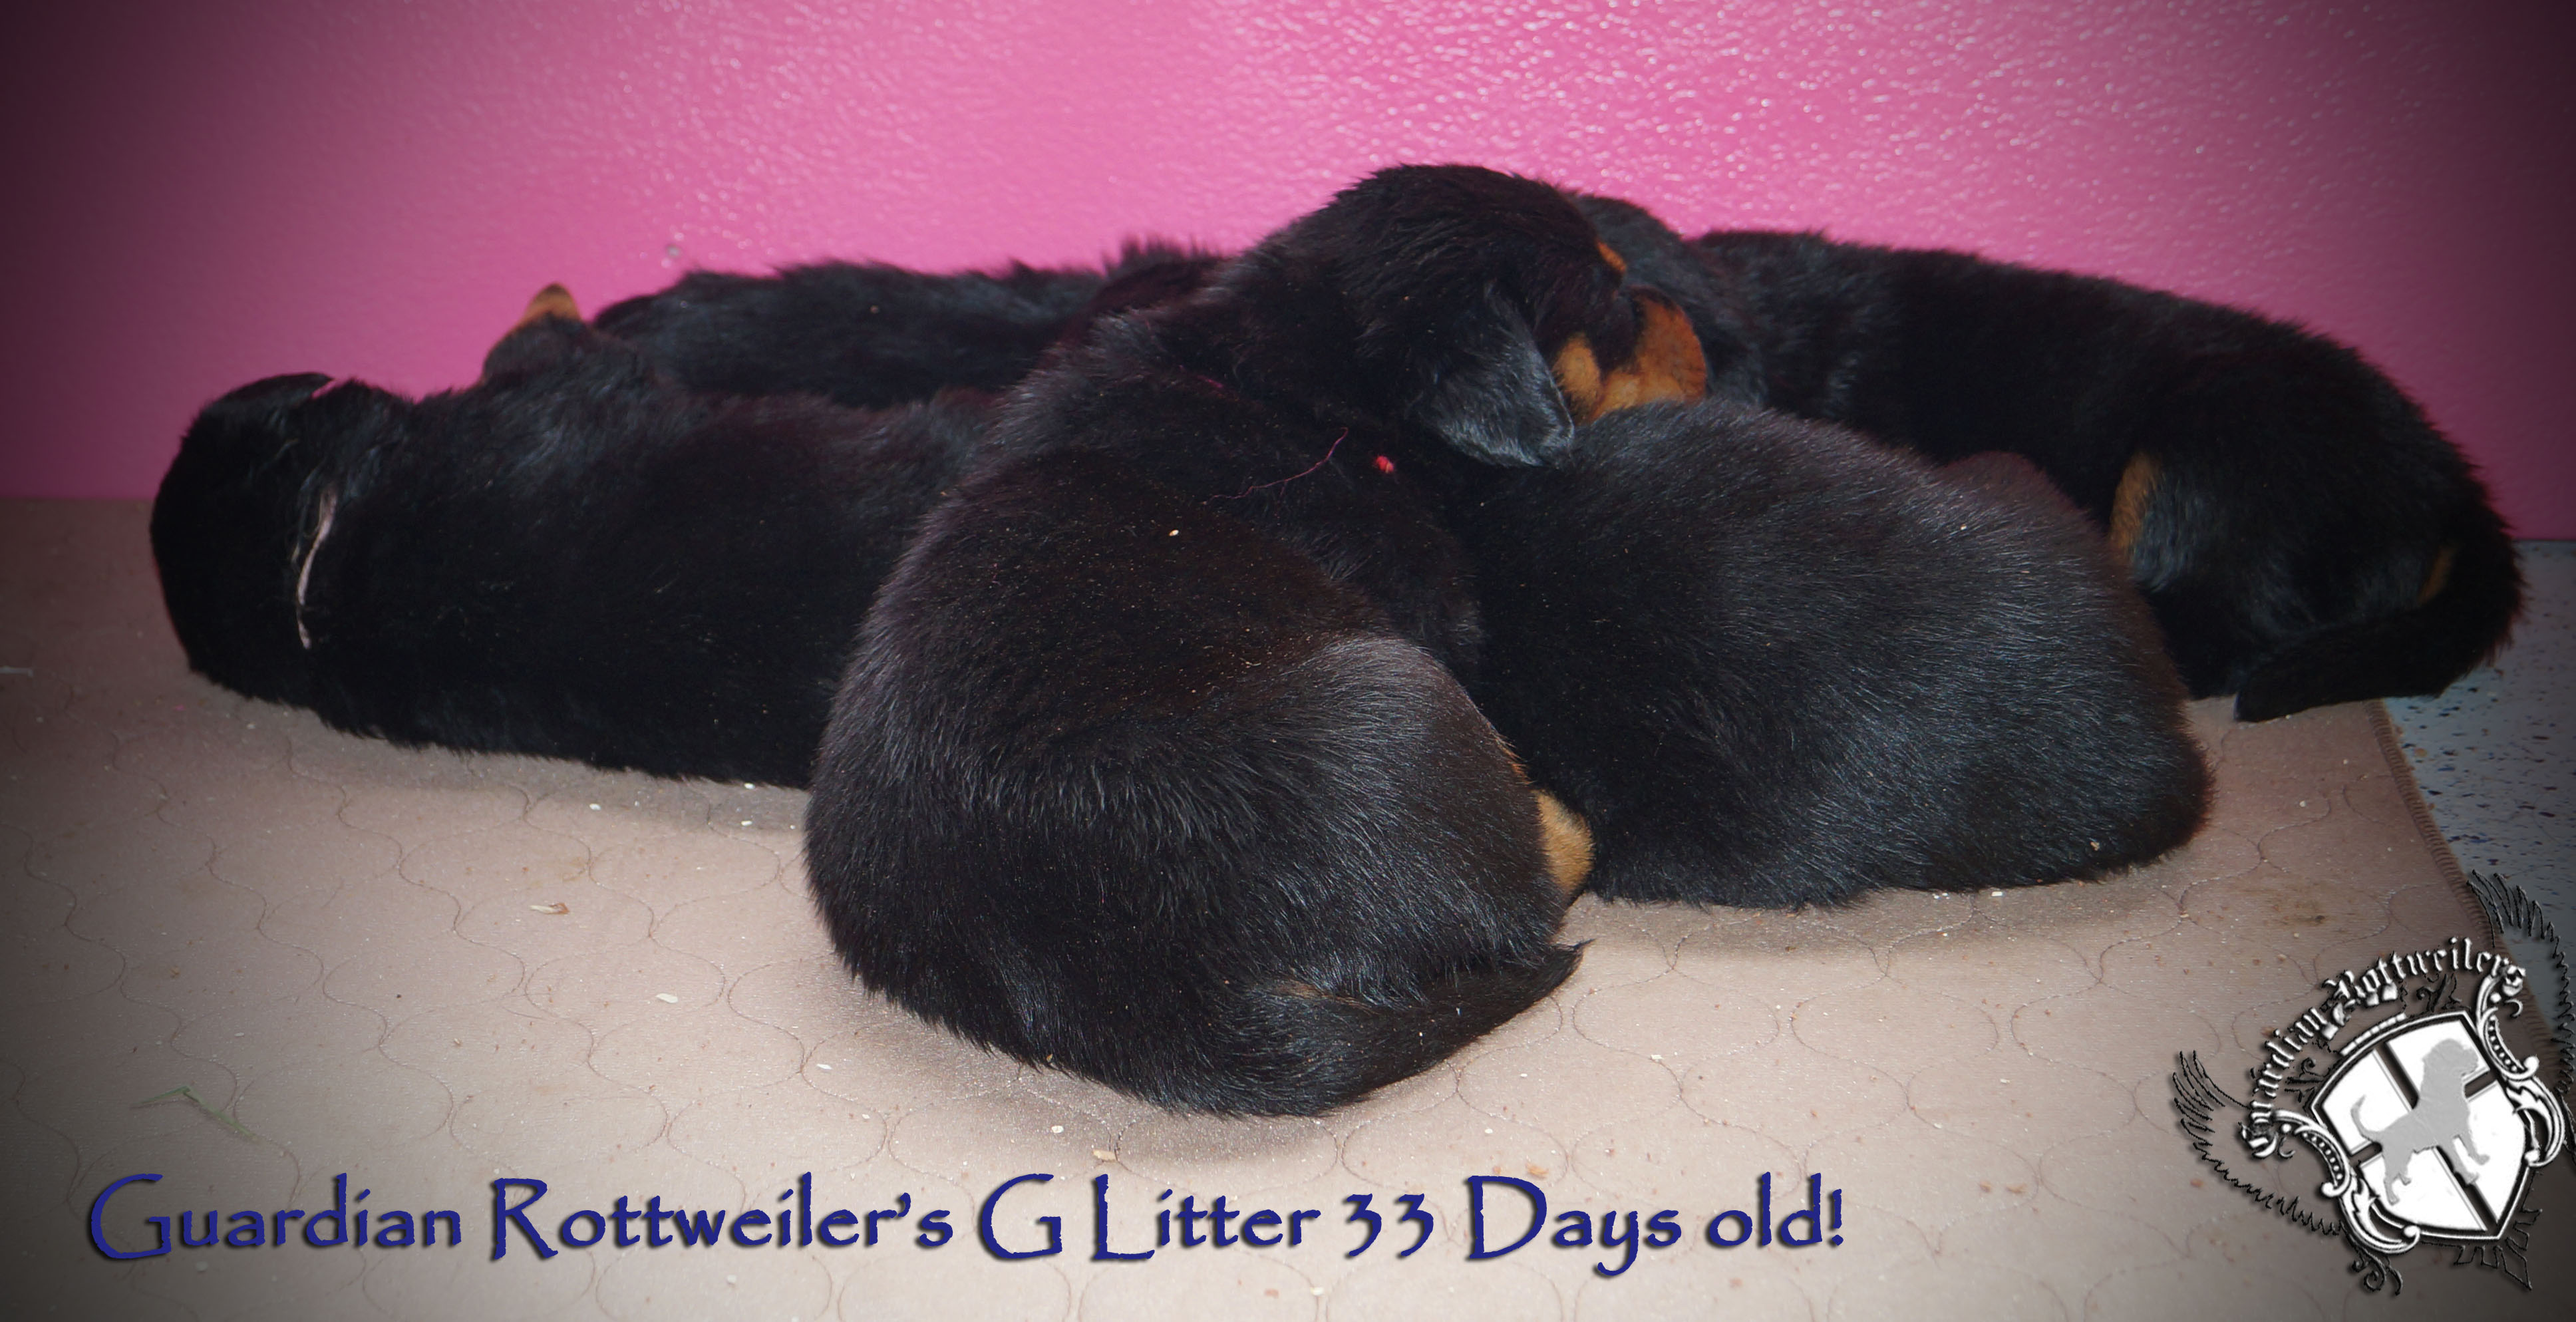 Best Rottweiler Chubby Adorable Dog - glitter33days01  Image_19649  .jpg